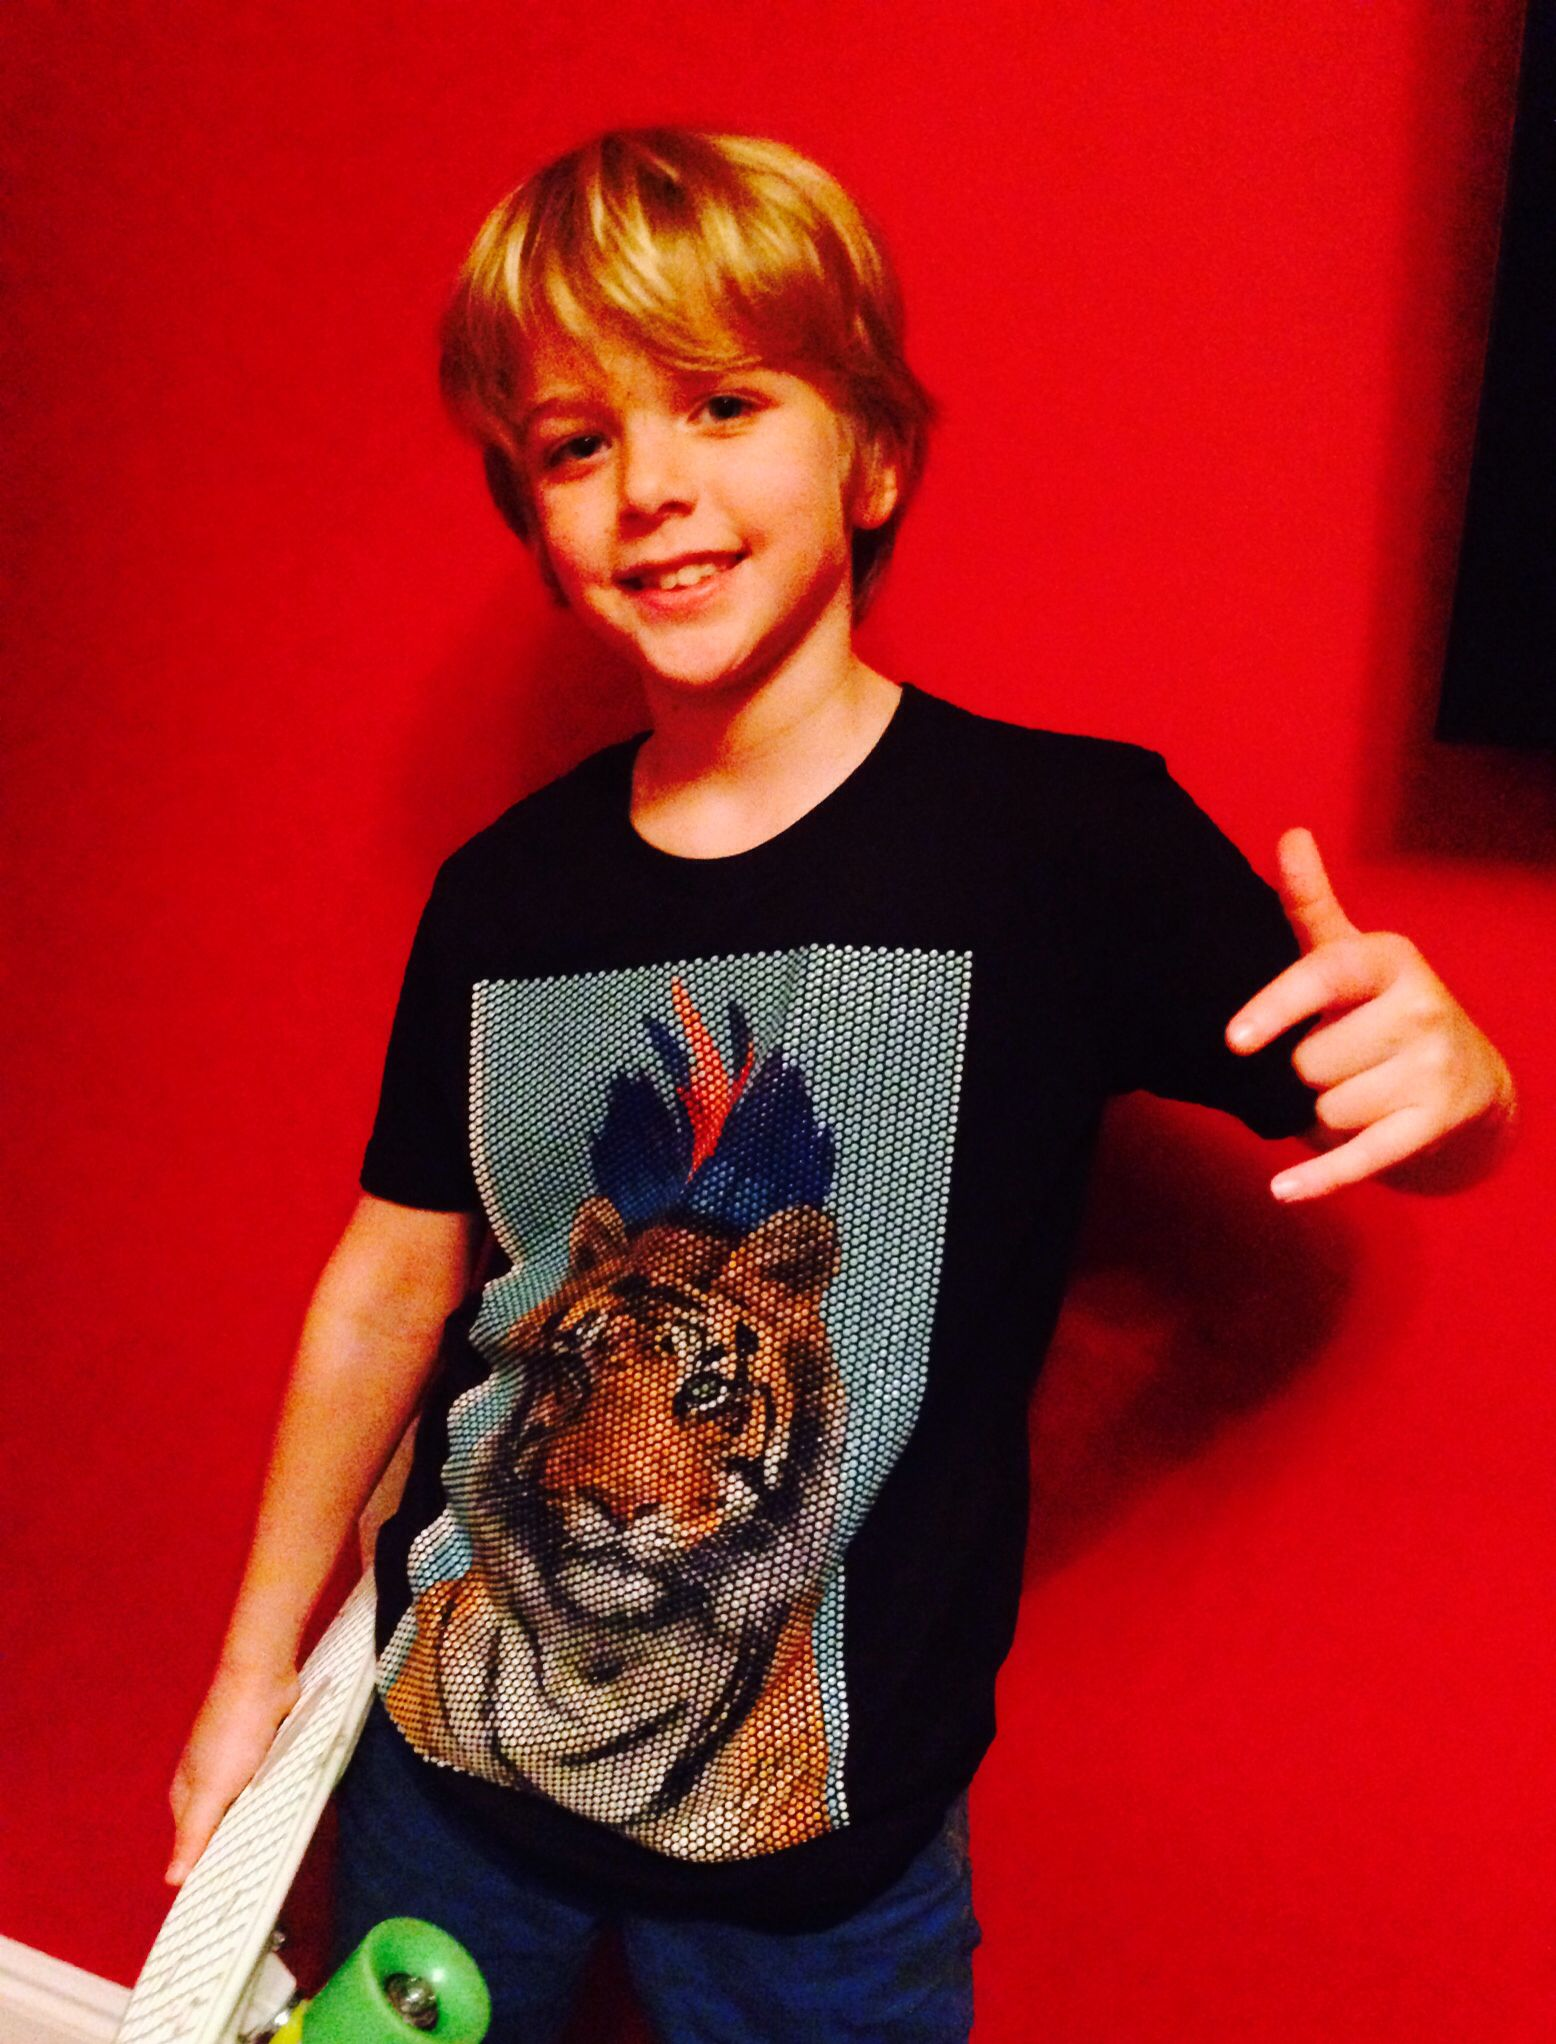 #newprint #alert #cakokids new #tiger #headdress #print #fashion #available #now #fun #boys #style